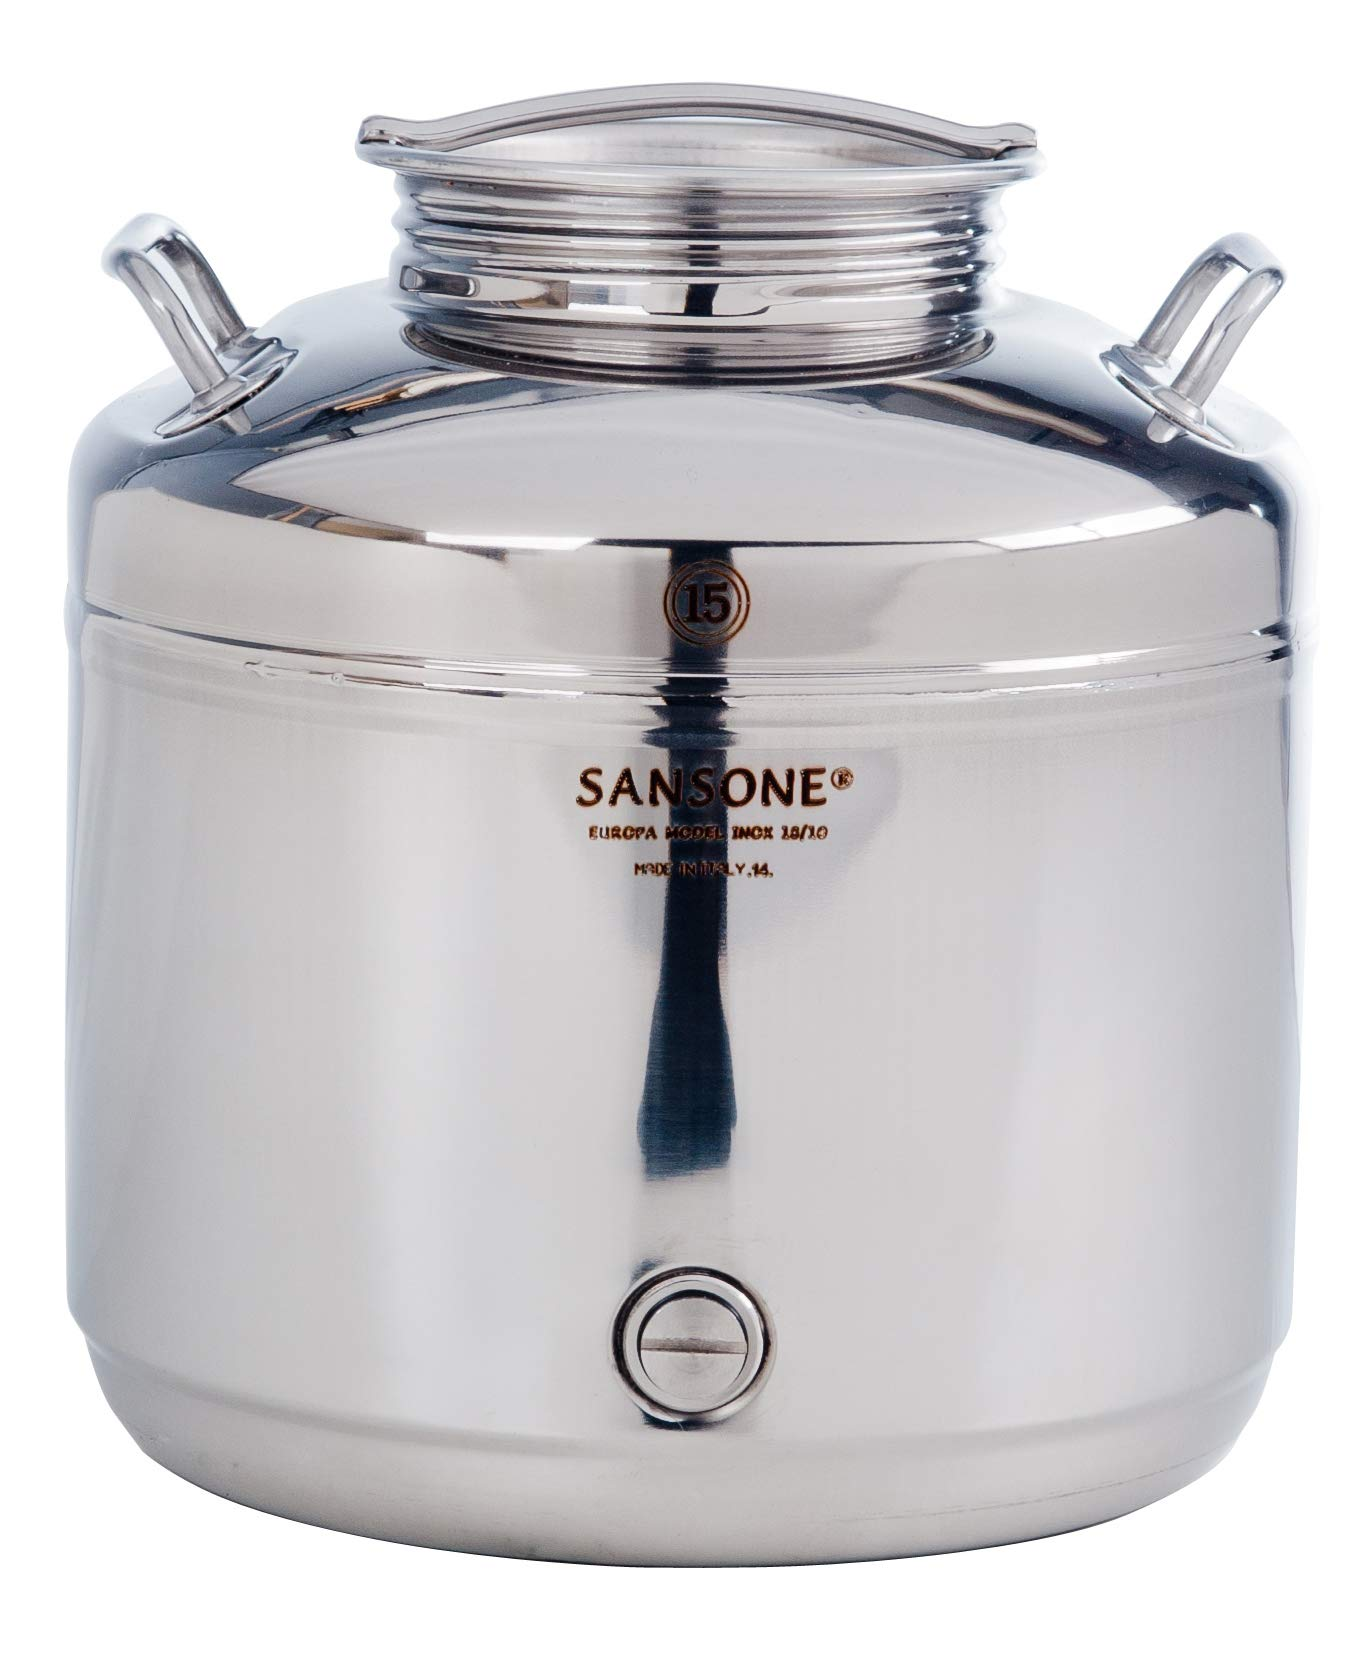 Sansone SA0015-1L Stainless Steel NSF Certified Fusti Water Cooler with Lever Spigot, 15 Liters, Silver